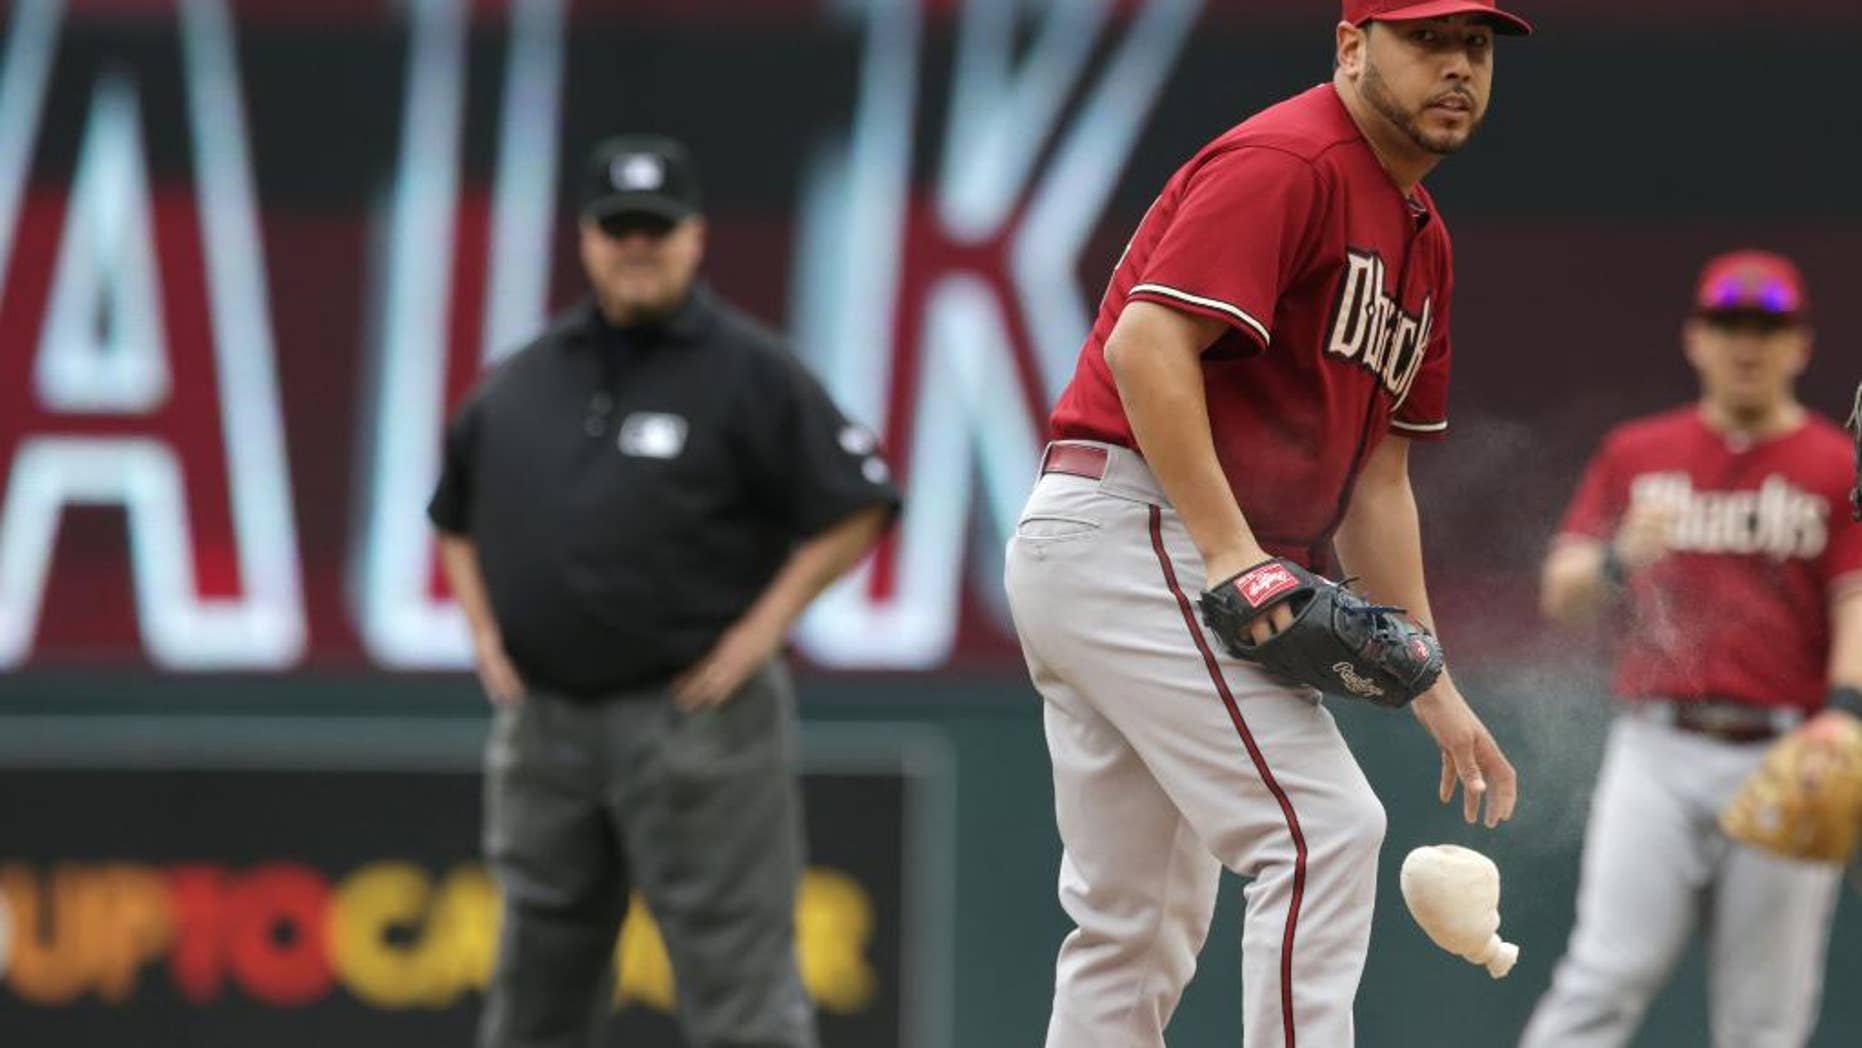 Arizona Diamondbacks' pitcher Vidal Nuno looks on after giving up a walk to Minnesota Twins' Kennys Vargas in the first inning of a baseball game, Wednesday, Sept. 24, 2014, in Minneapolis. Nuno gave up three walks in the first. (AP Photo/Jim Mone)